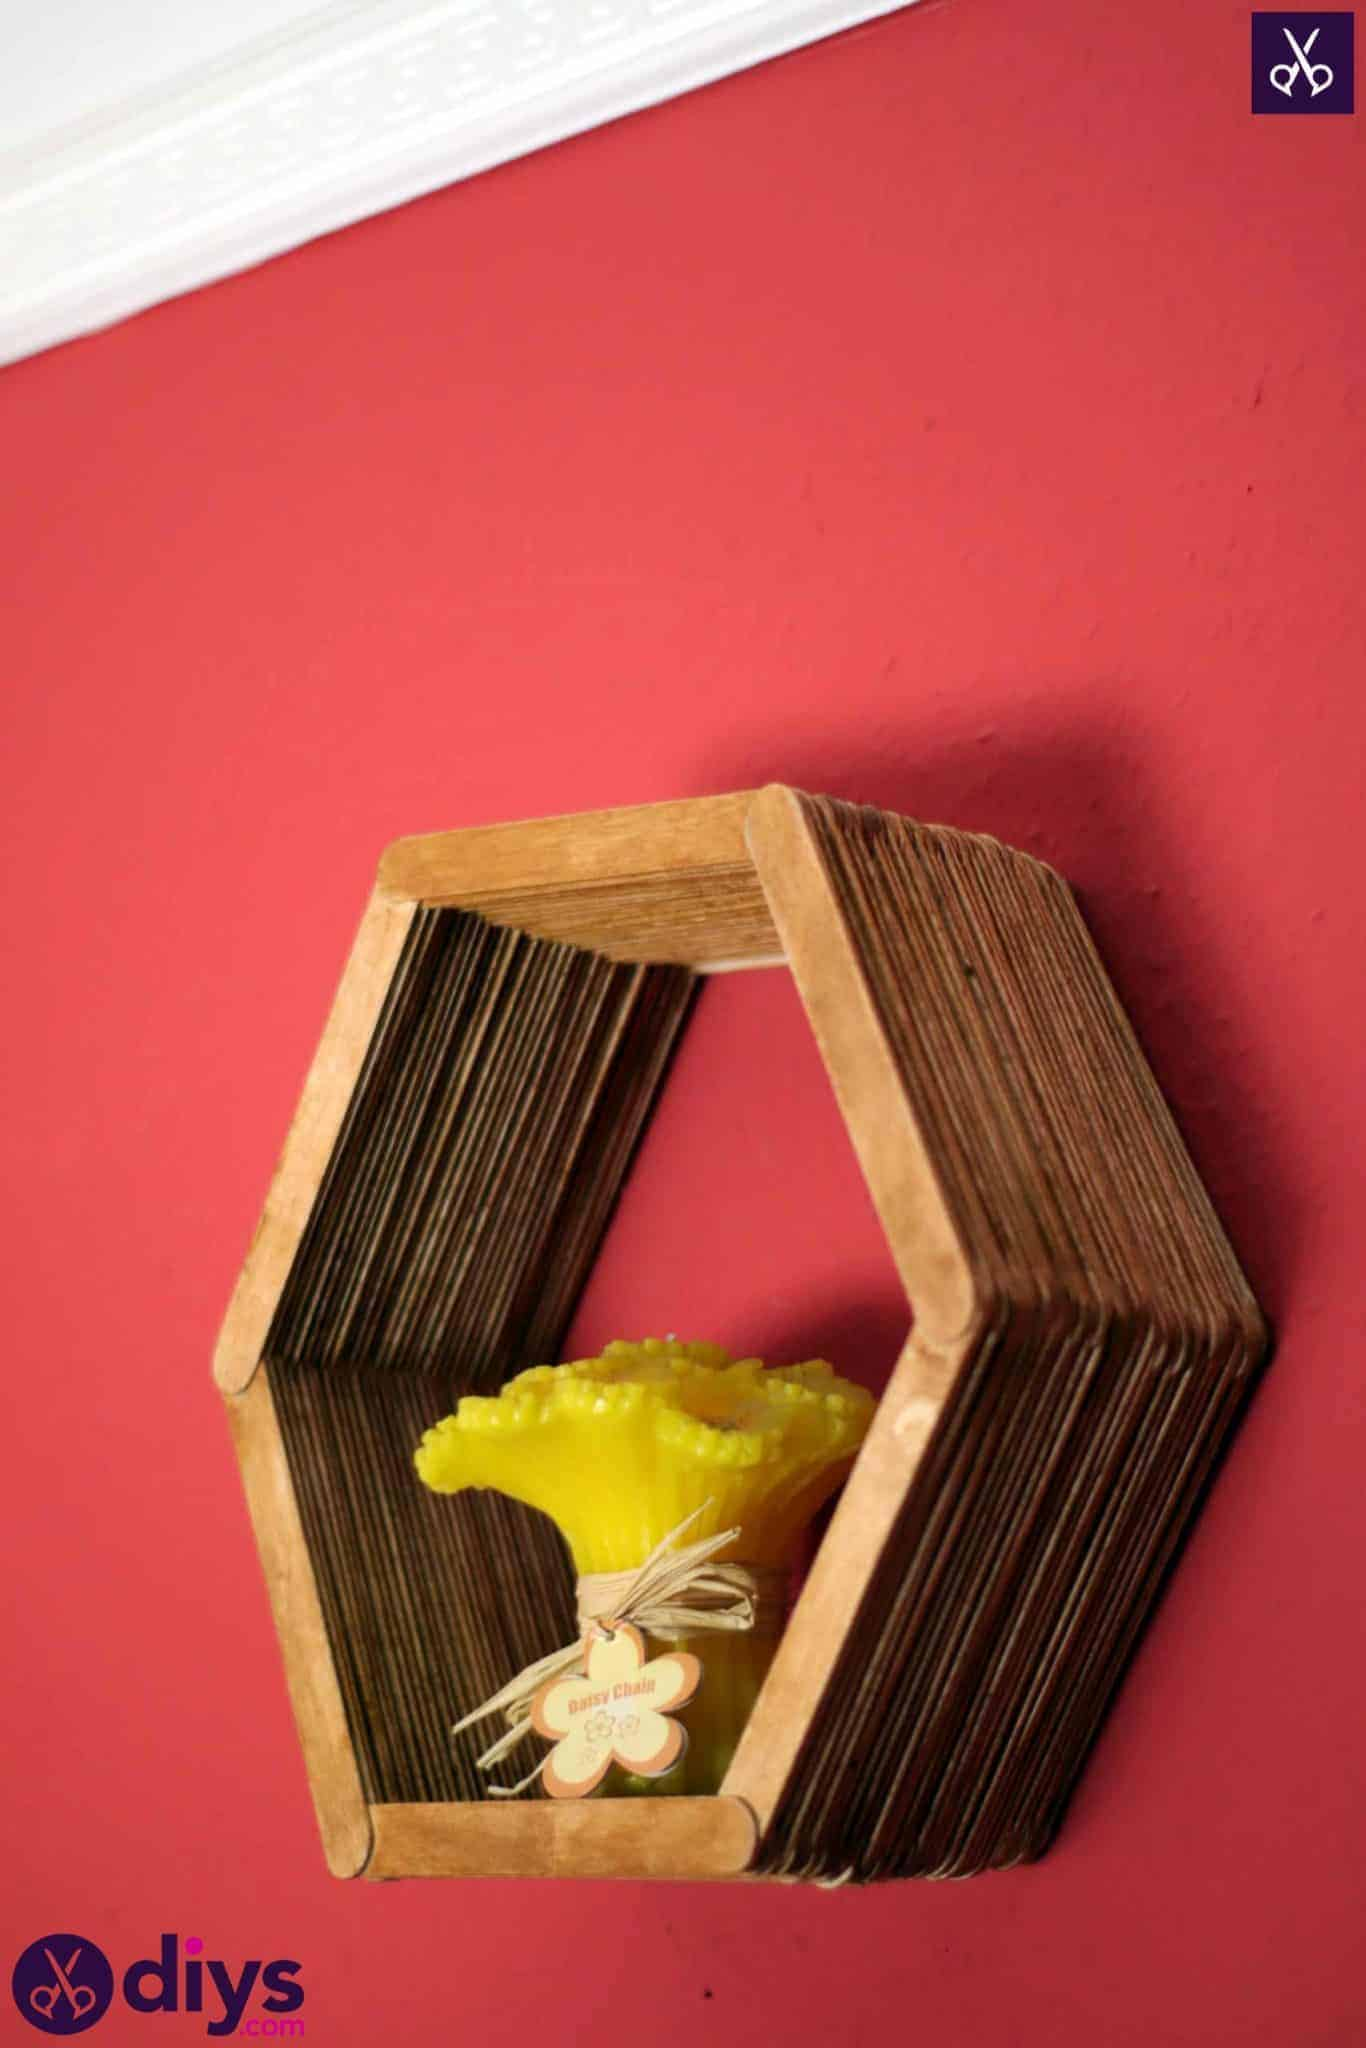 Diy popsicle stick hexagon shelf hang 1366x2048